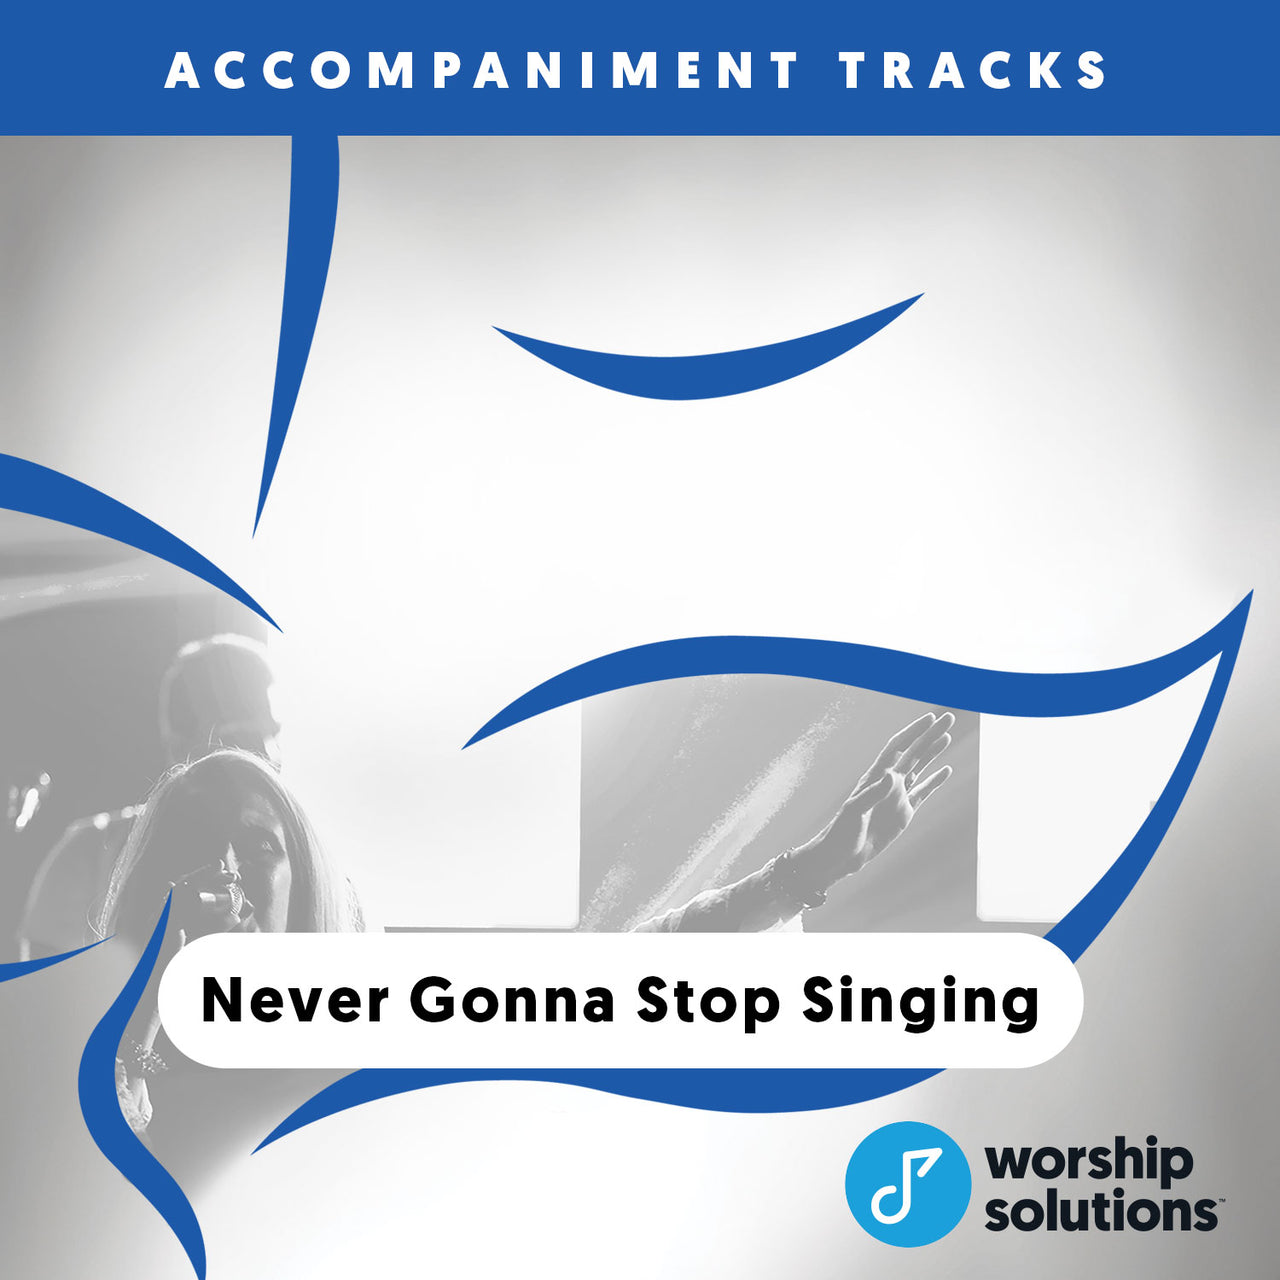 Never Gonna Stop Singing, Accompaniment Track